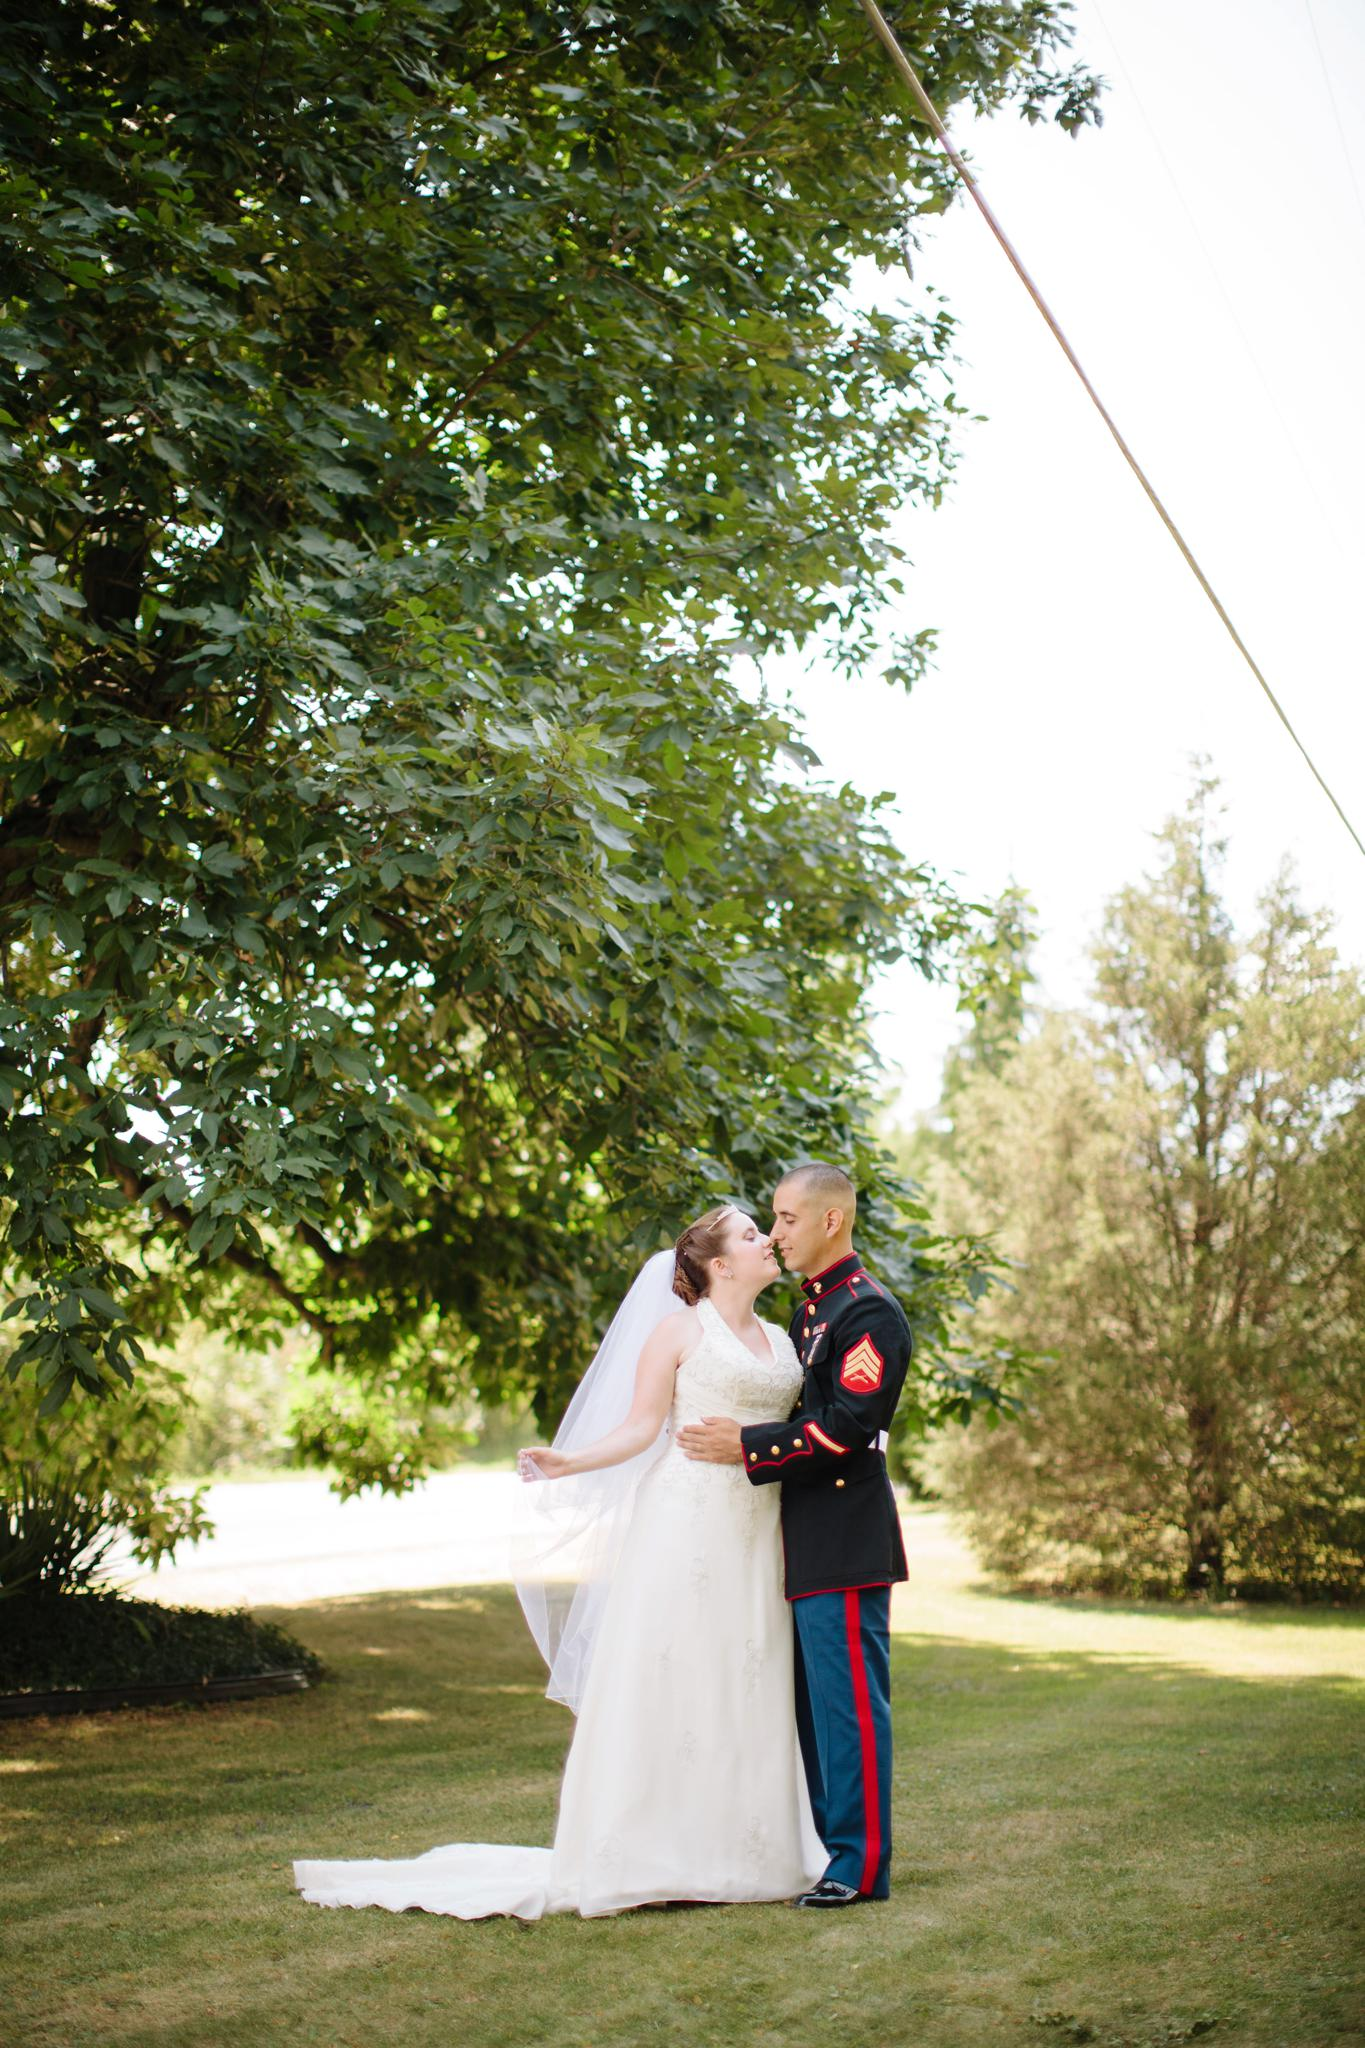 dotti_lou_grove_wedding_tunkahnnock_pa_wedding_photographer_military_marine_corps_2255.jpg